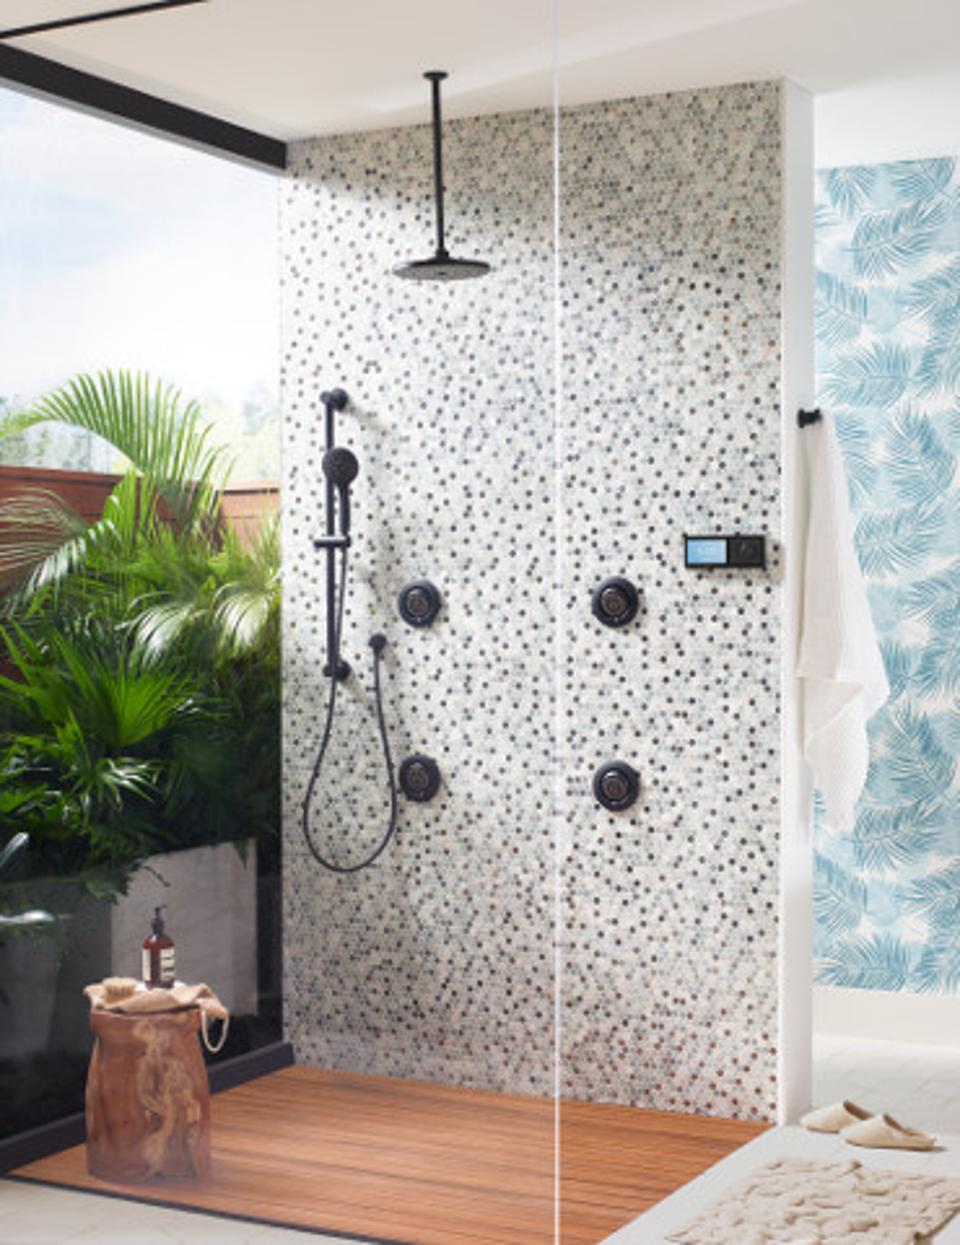 Black fittings and accessories have made it easier to create a black or partially black bathroom.